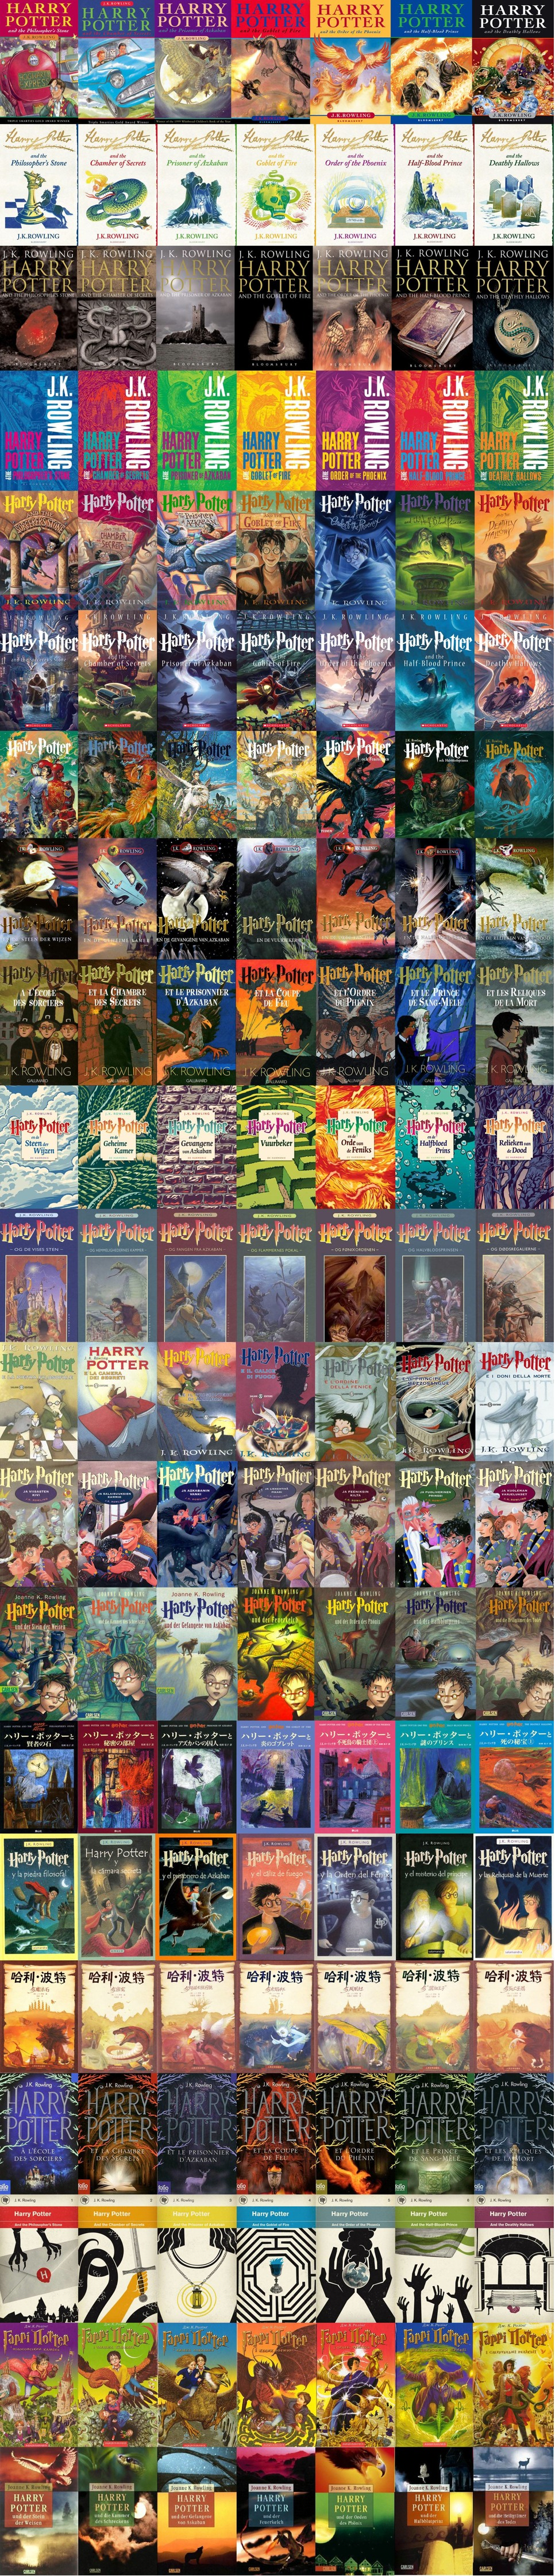 harry-potter-covers-around-the-world